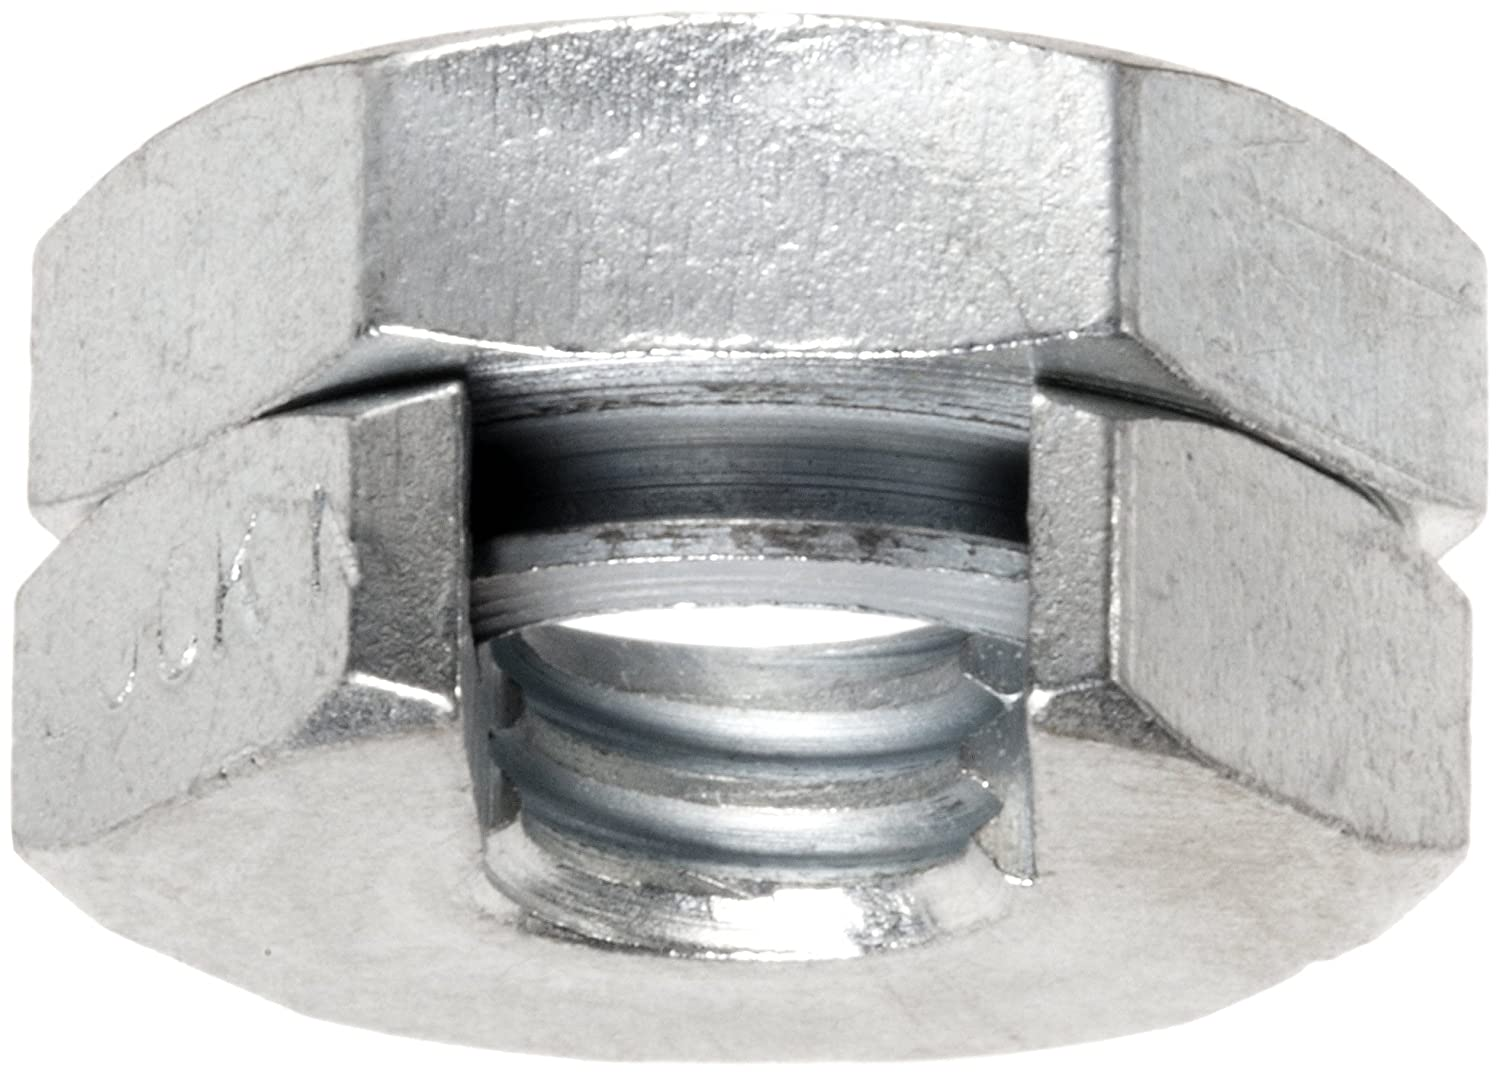 Steel Lock Nut Pack of 25 Small Parts B000FMYF4U 1//2-13 1//2-13 Pack of 25